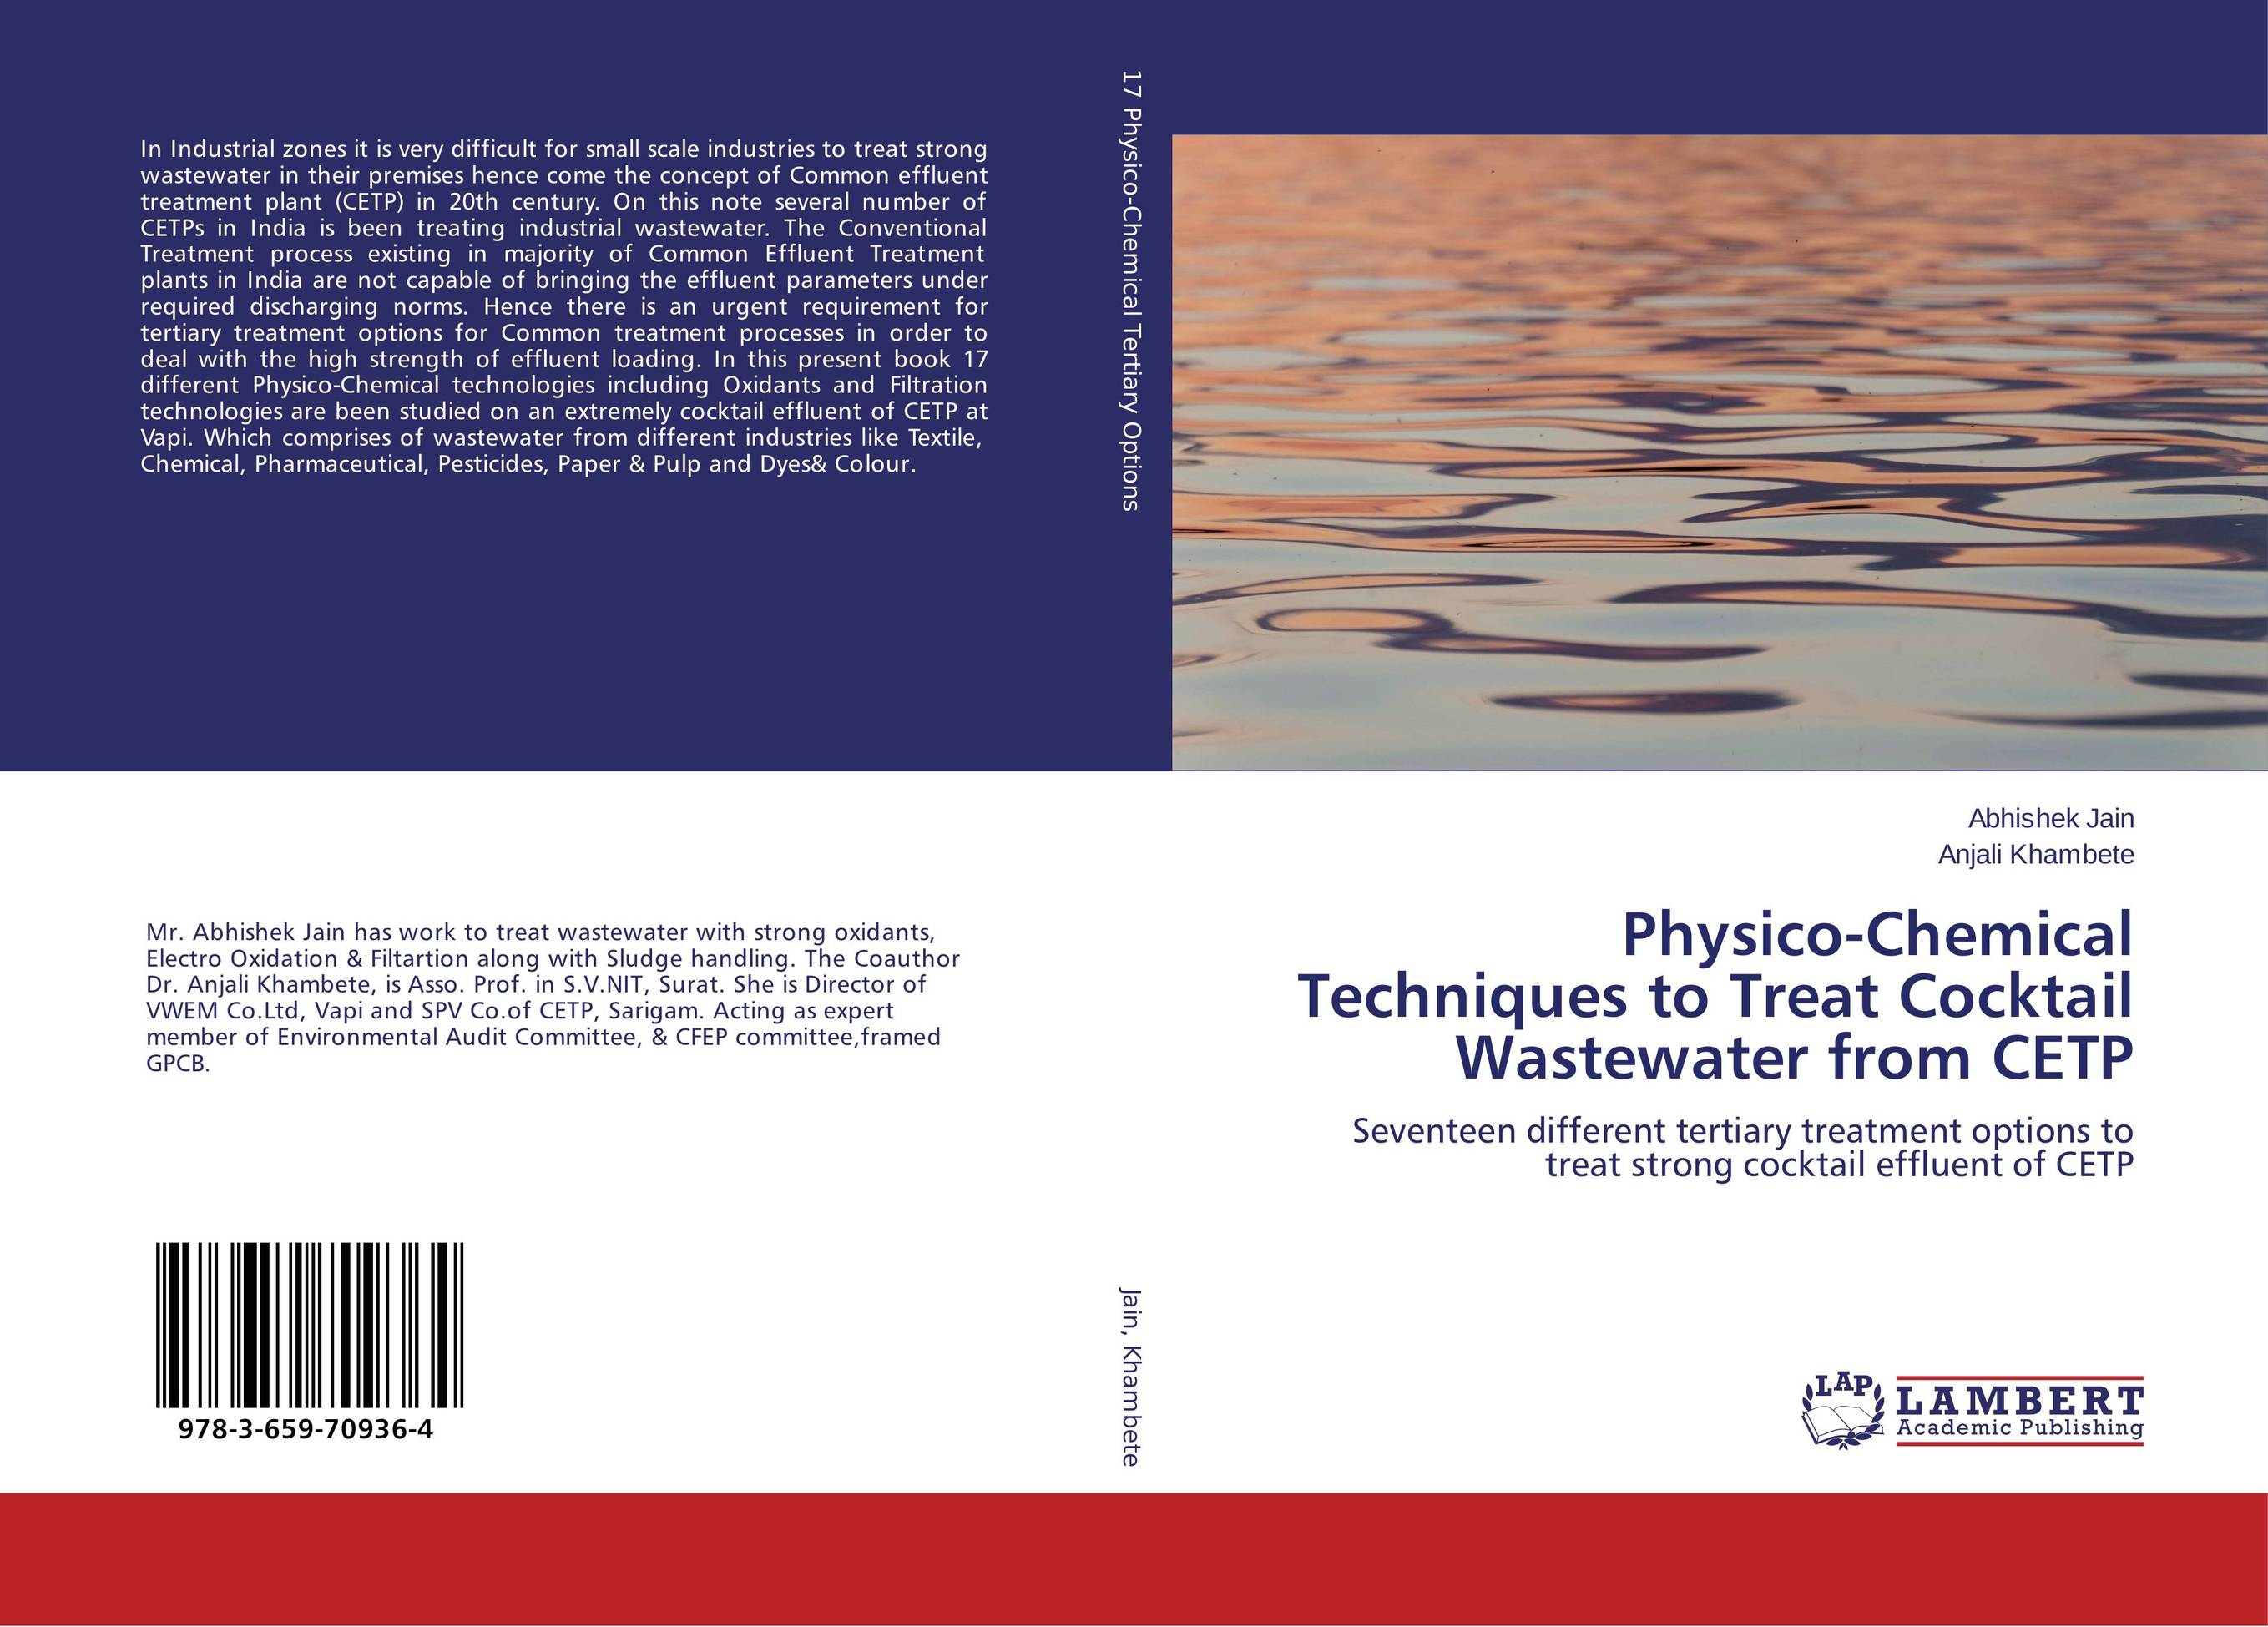 Physico-Chemical Techniques to Treat Cocktail Wastewater from CETP mathematical modelling and simulation of wastewater treatment plants